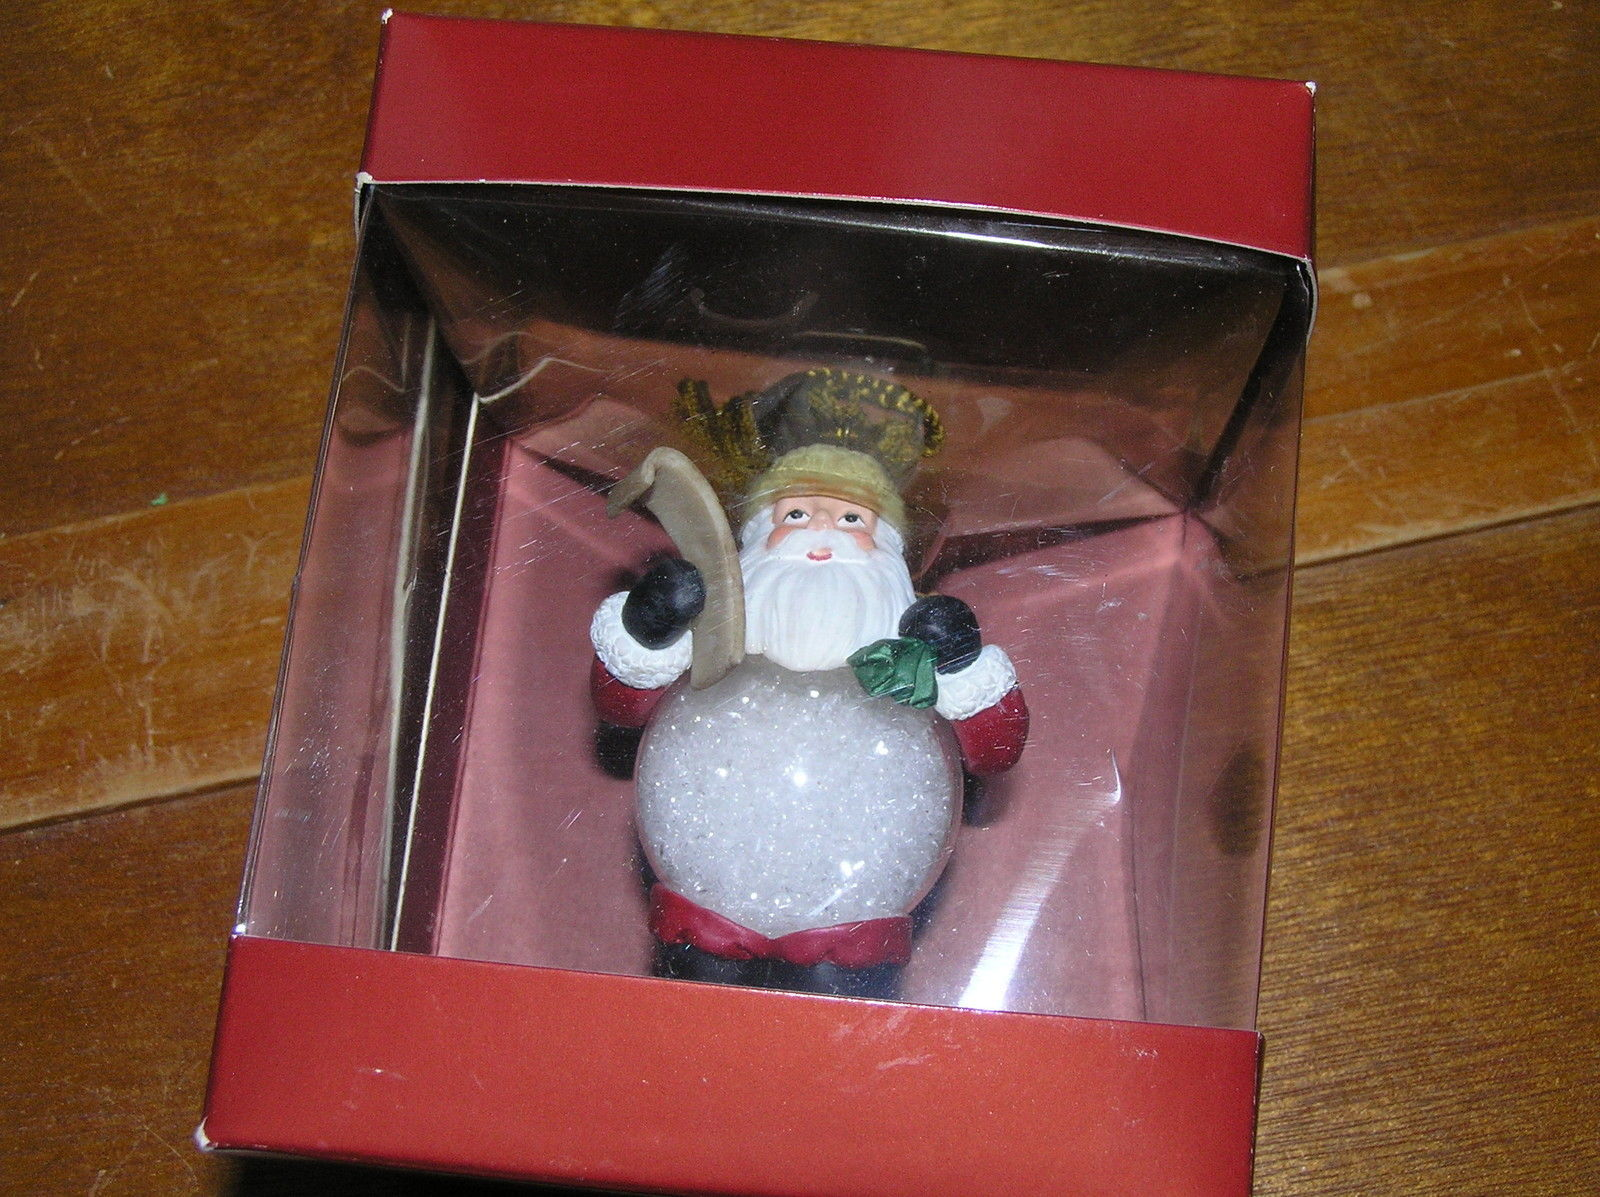 Gorham Winter Follies Snow Globe Belly Santa Claus with Bag of Gifts & List